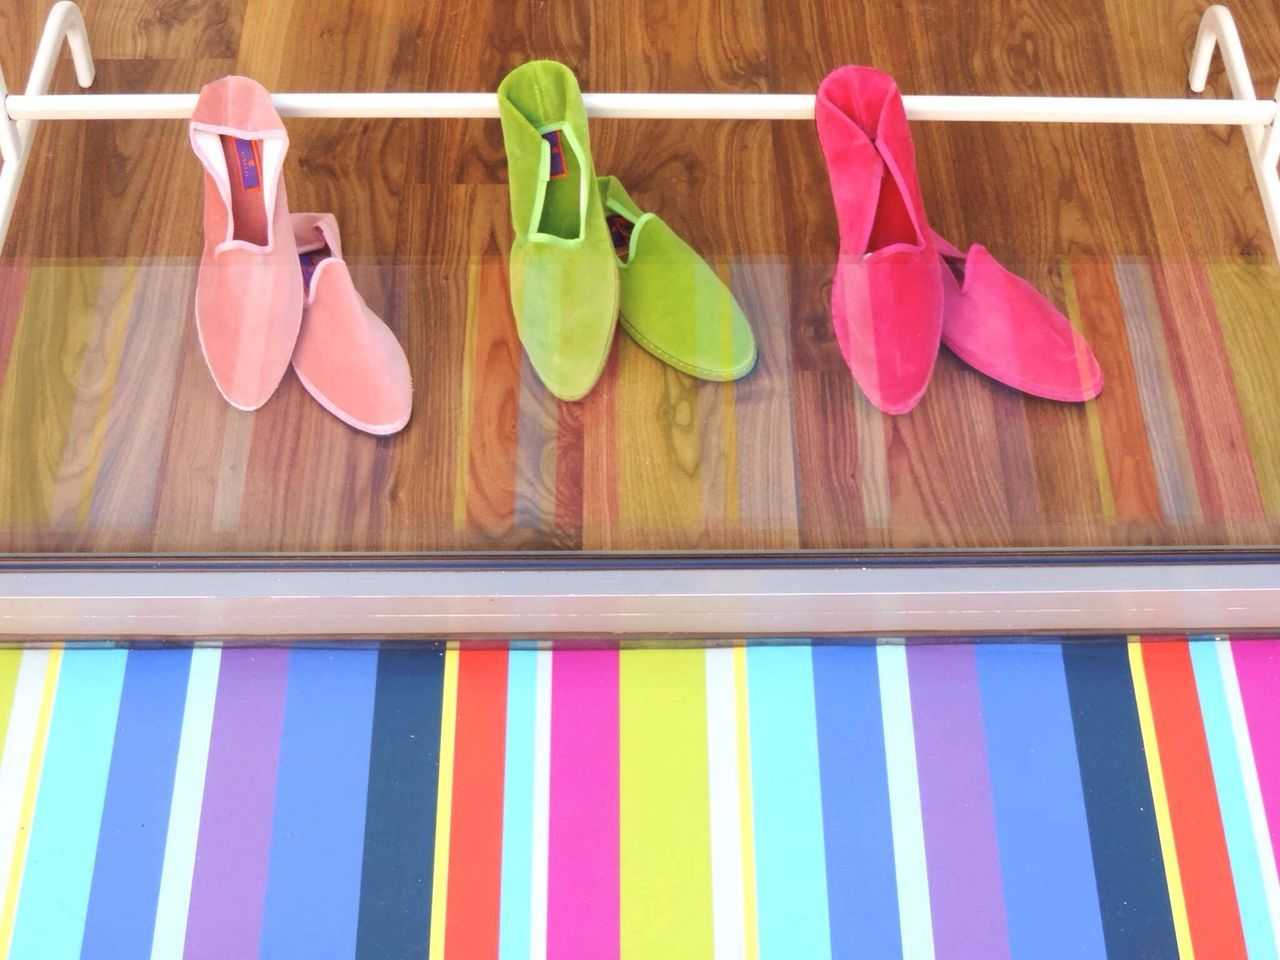 Shop Around The Corner Colours Slippers Stripes Shadows And Shades